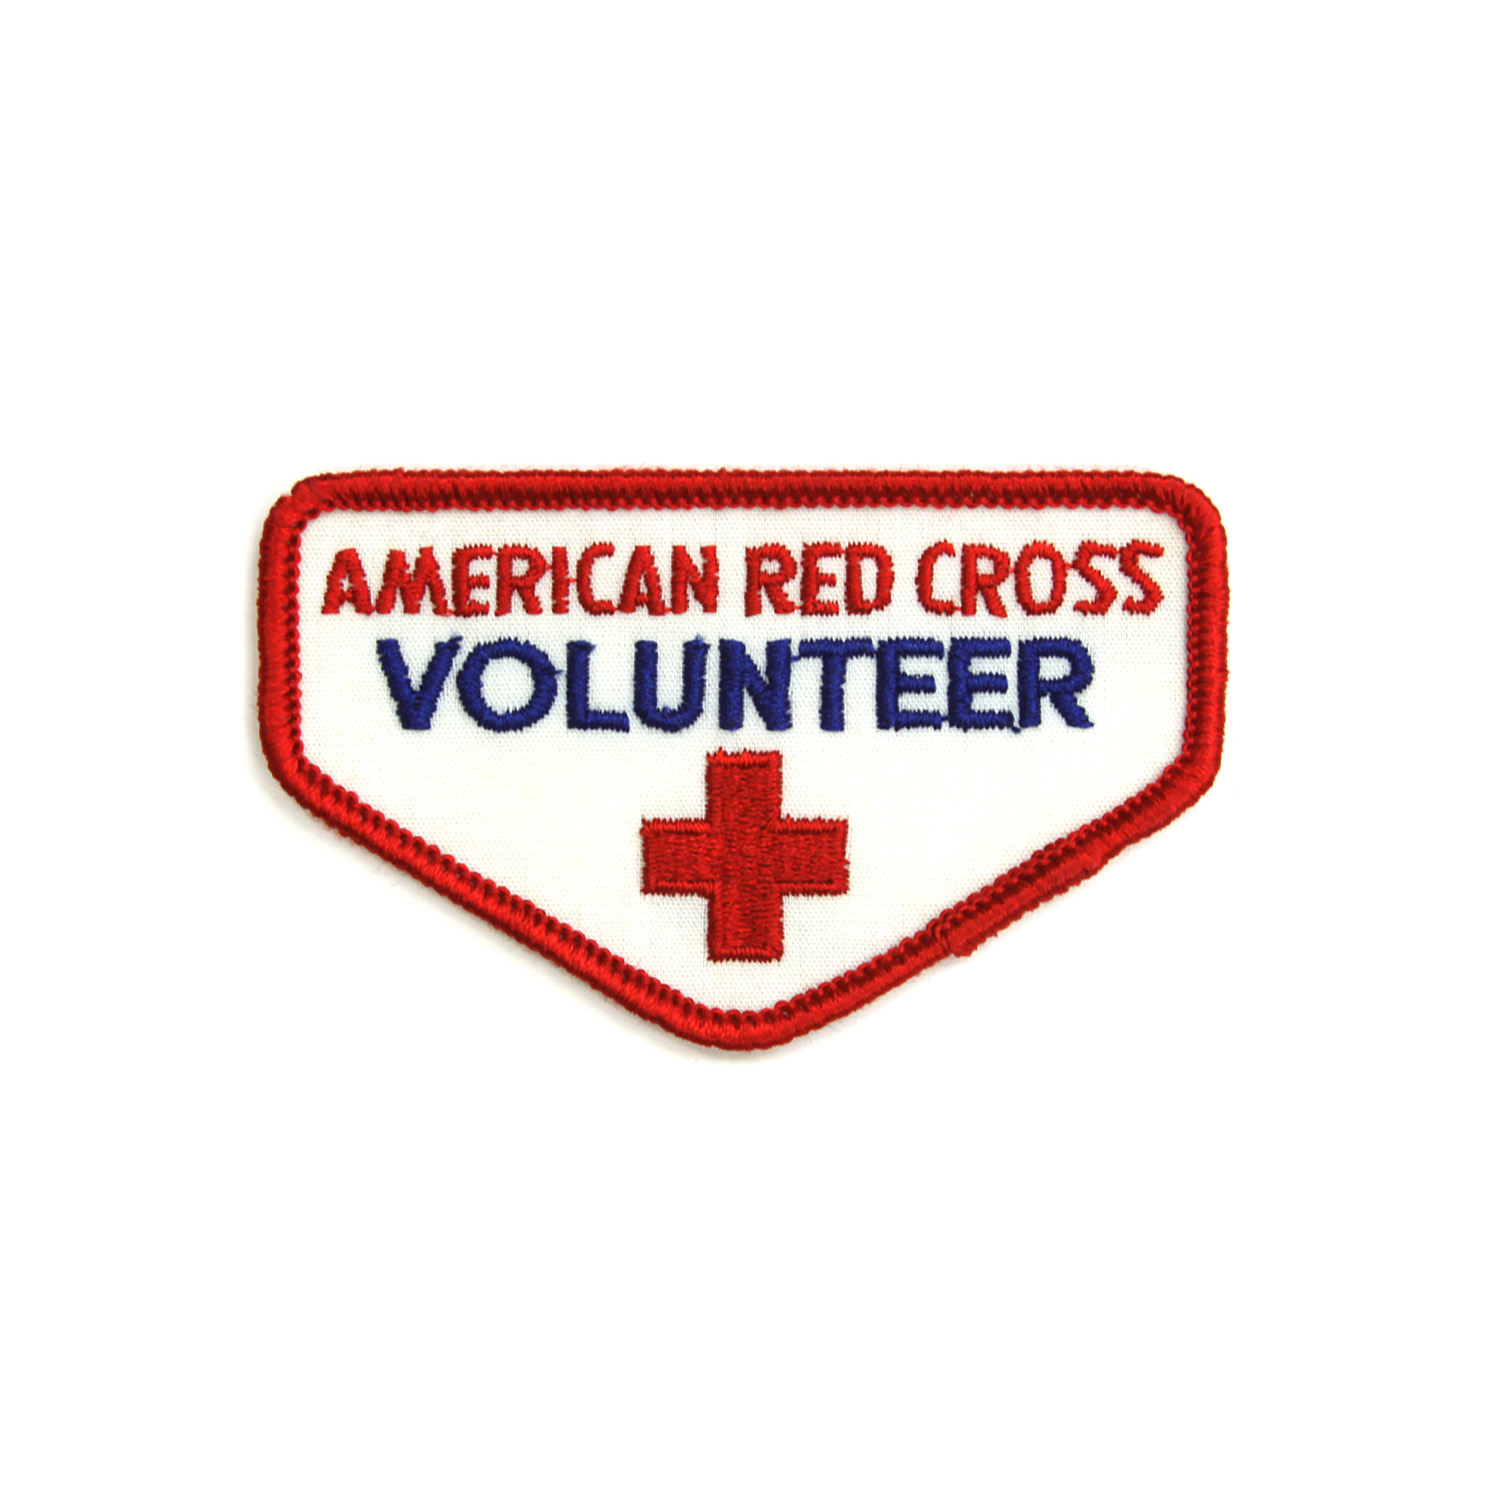 American Red Cross Volunteer Patch